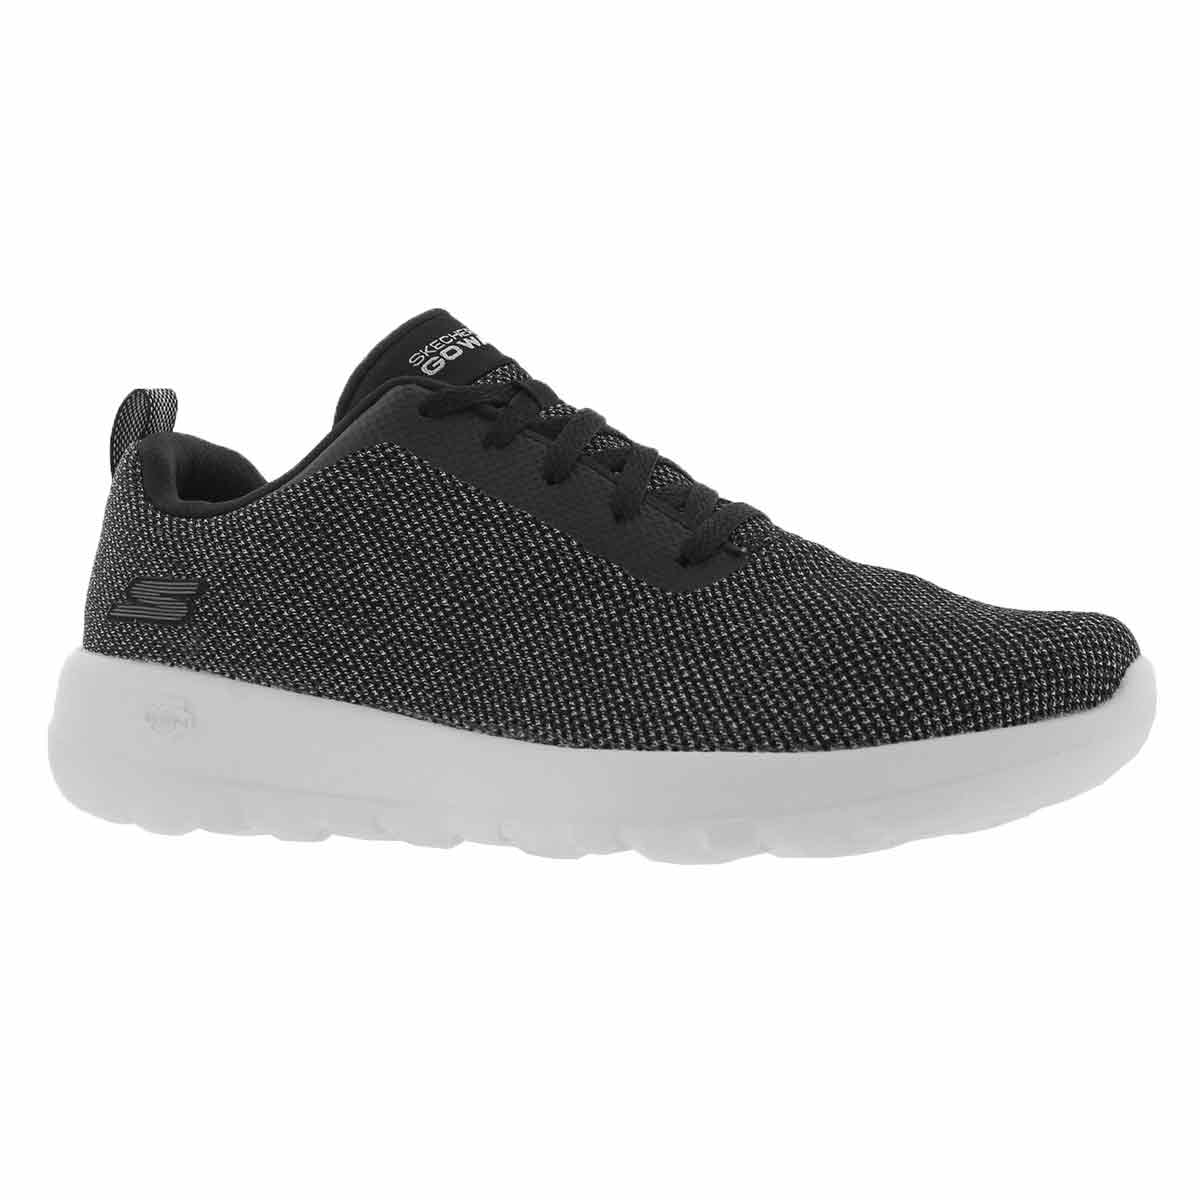 Women's GO WALK JOY black/white walking shoe